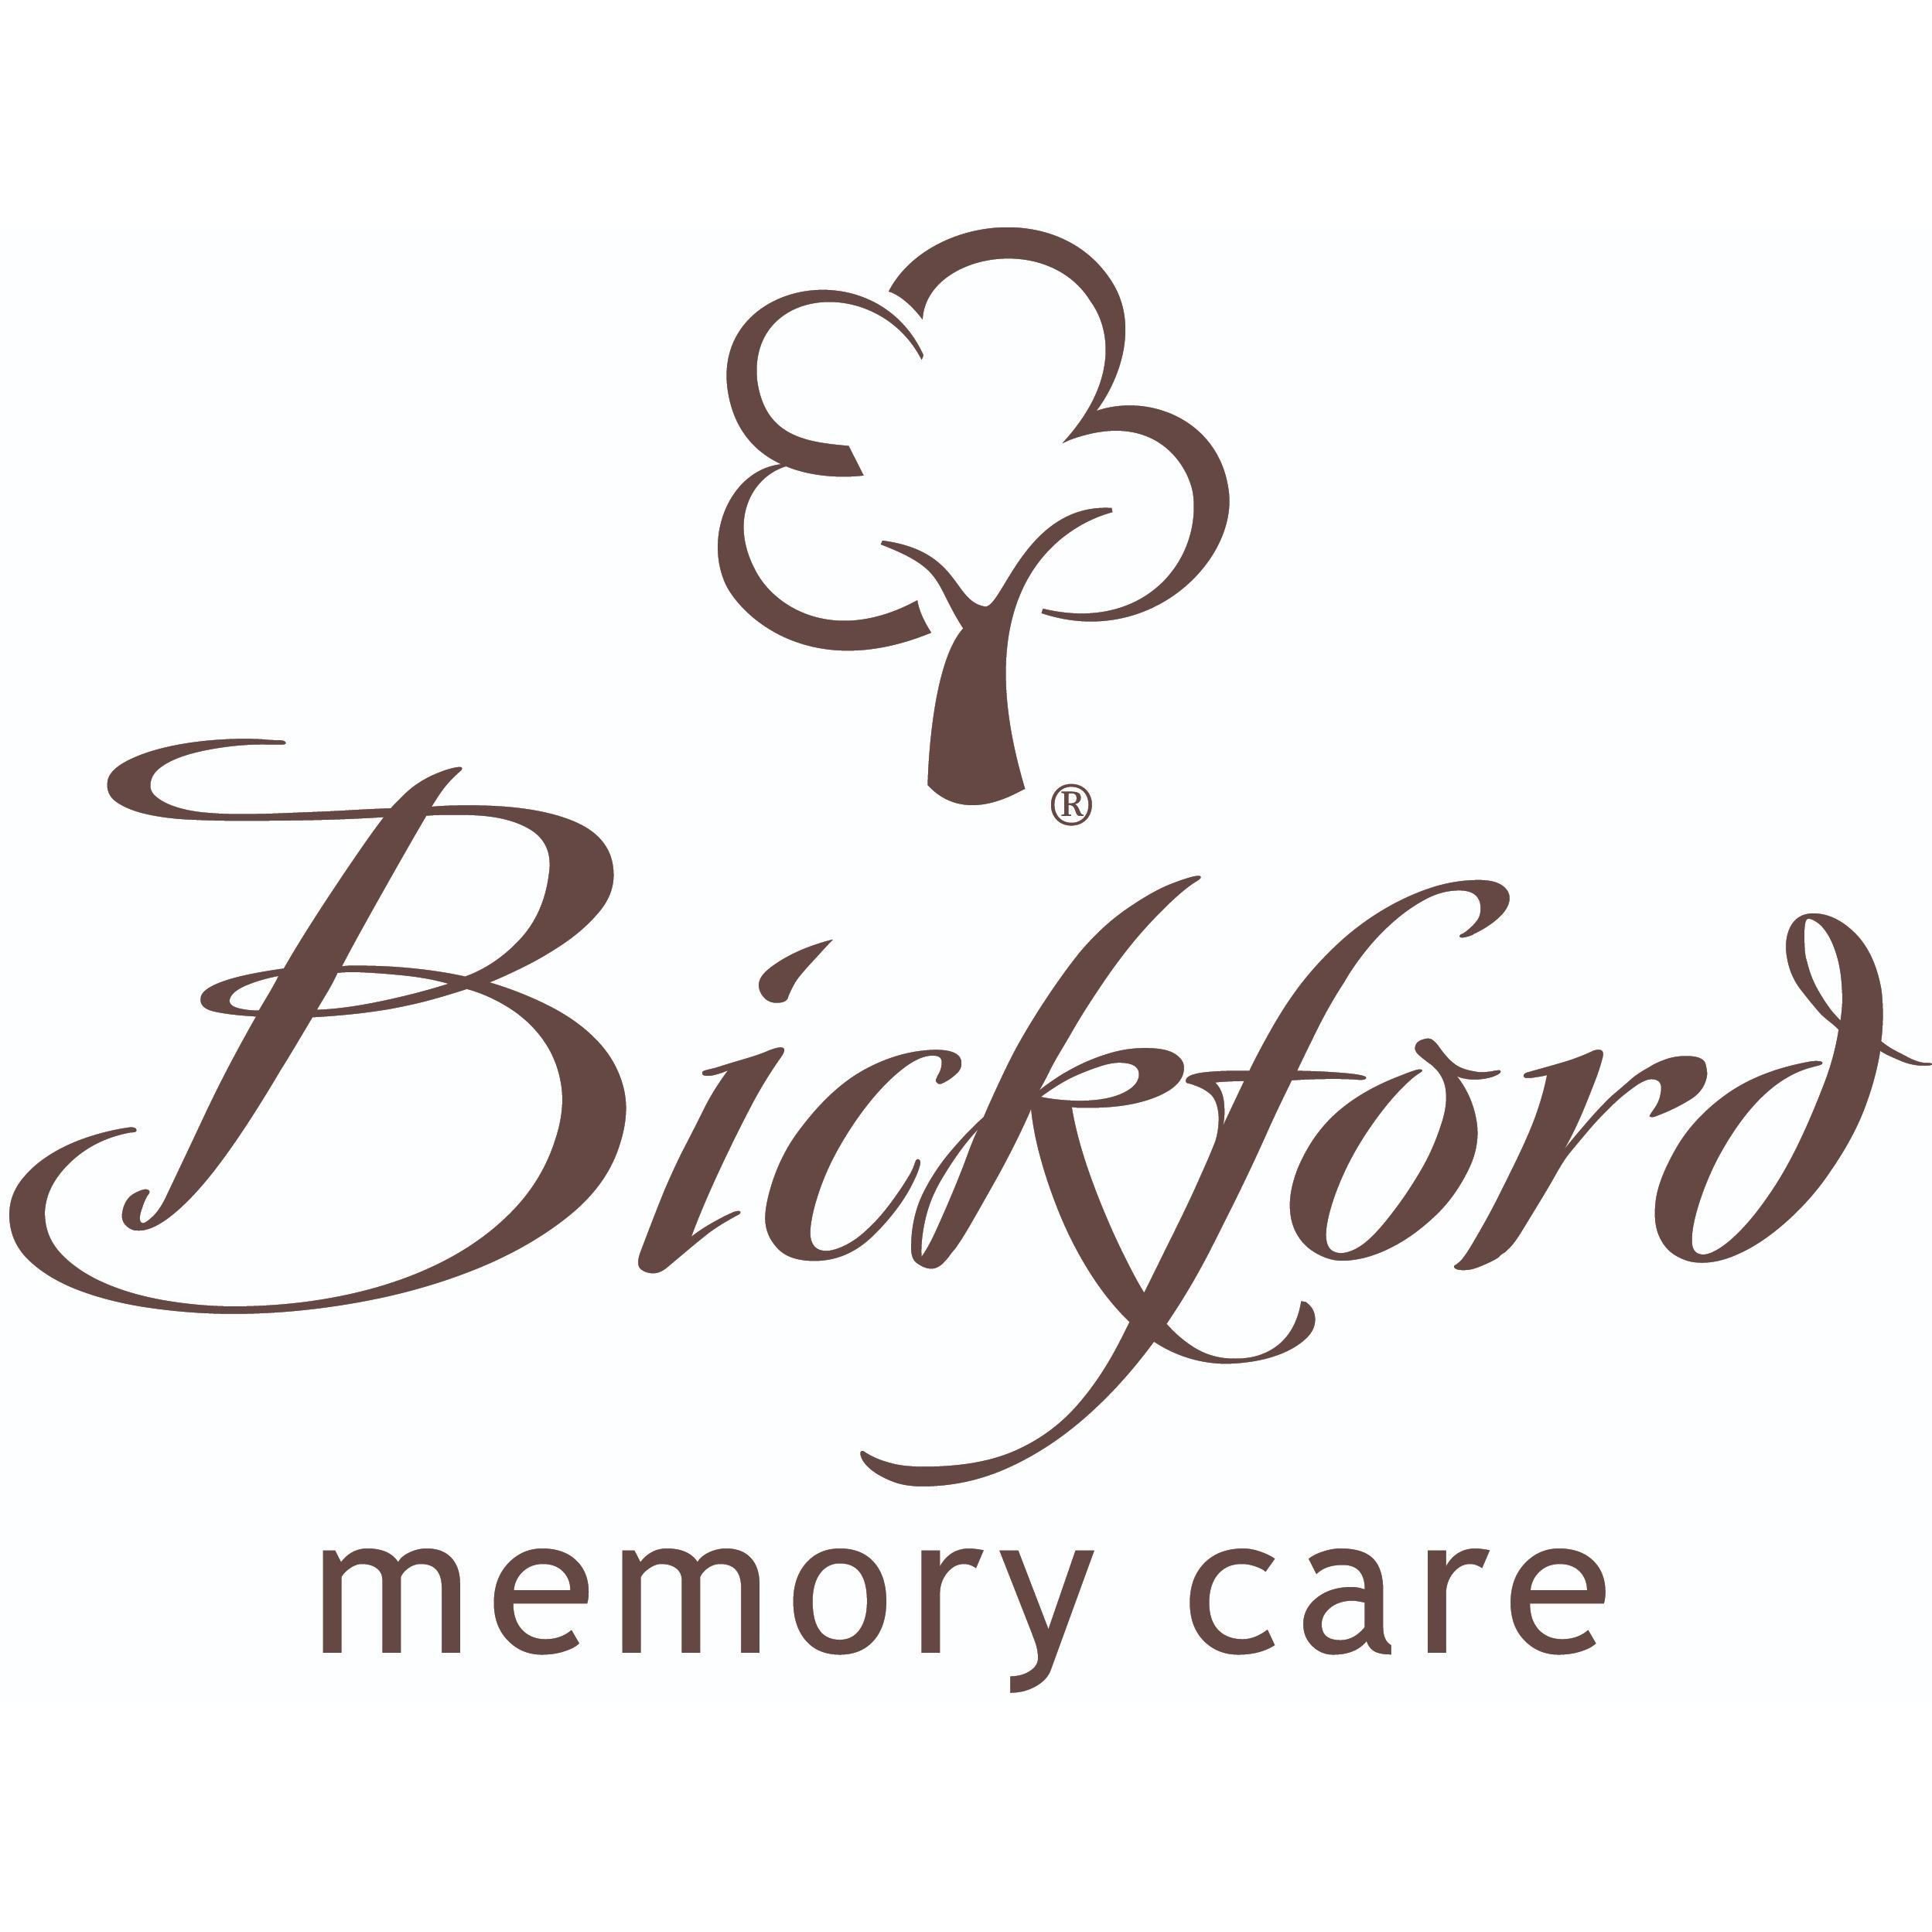 Bickford of Sioux City